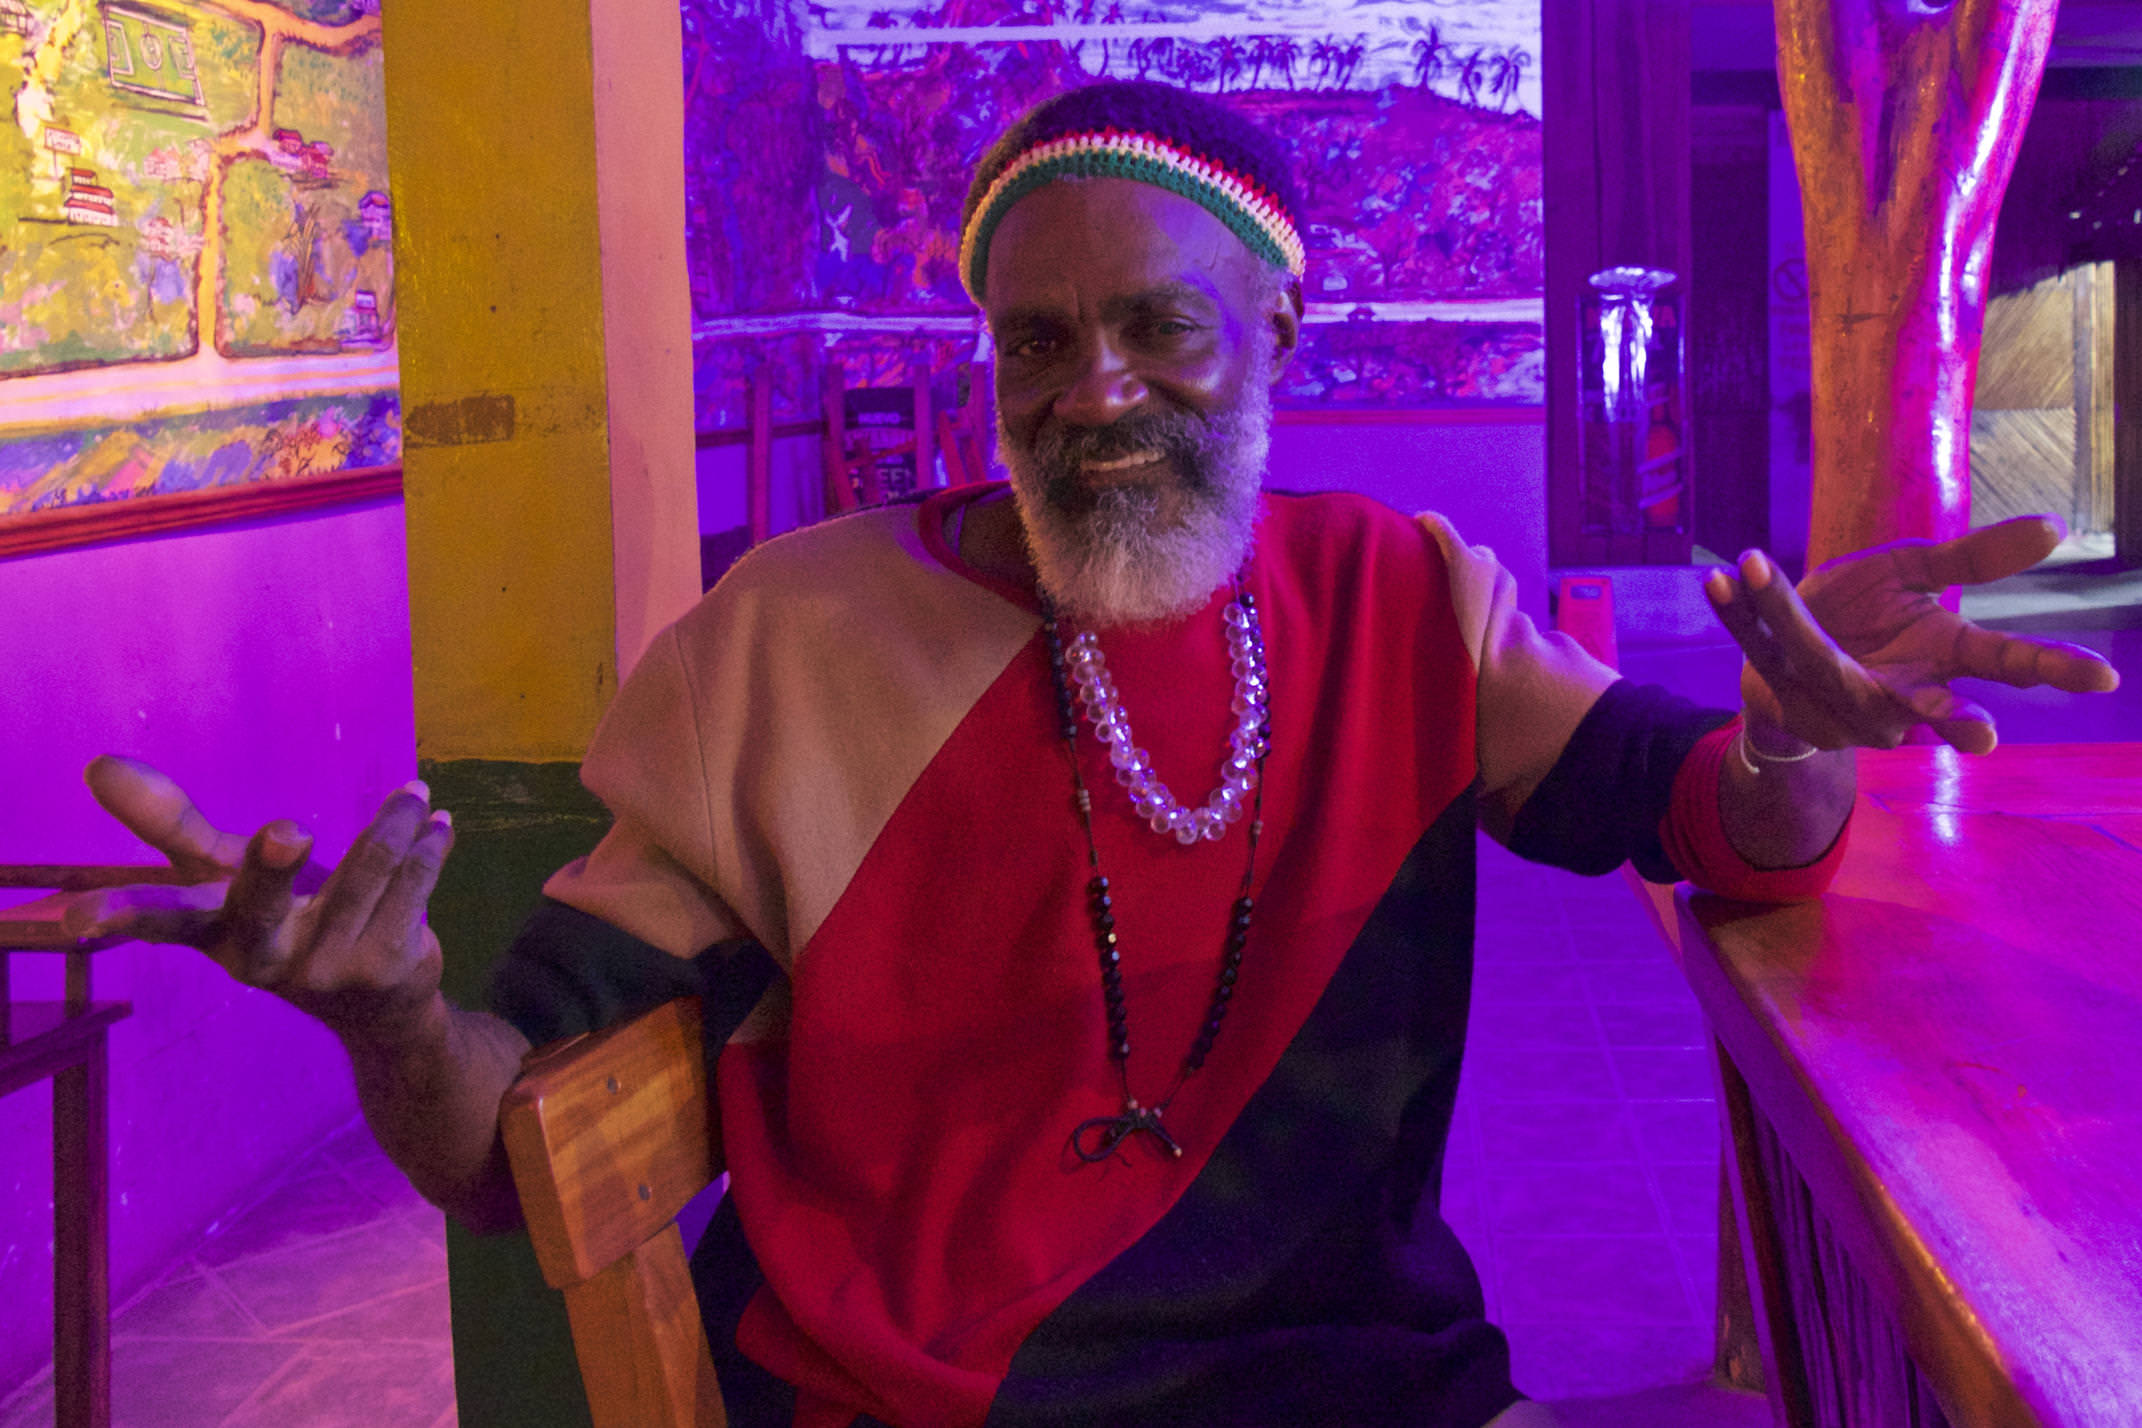 Costa rica cahuita colourful character in bar